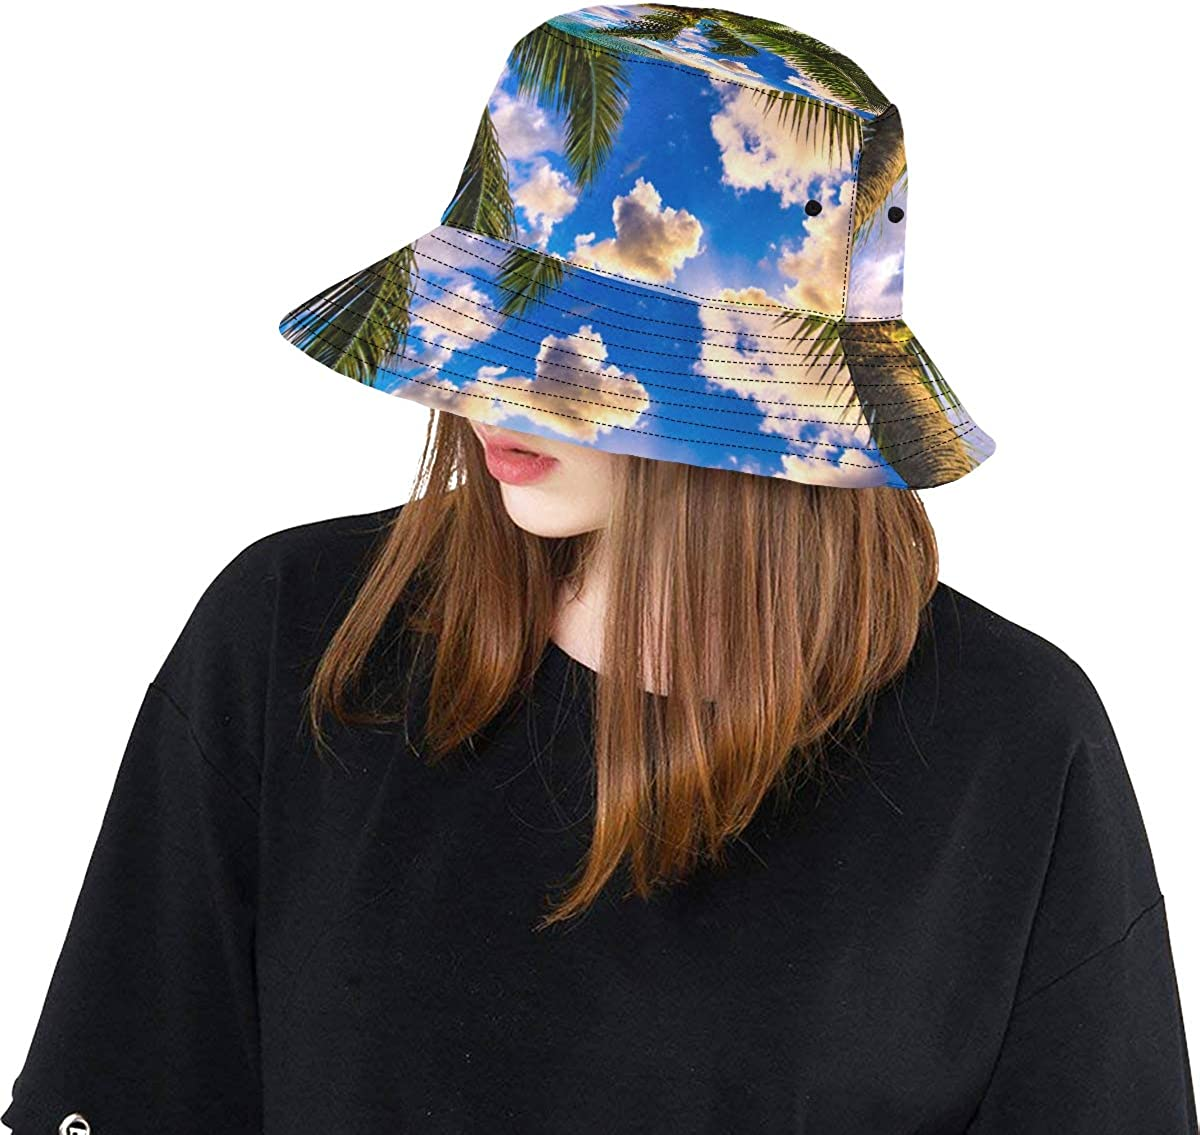 Hawaii Sunrise Landscape Summer Unisex Fishing Sun Top Bucket Hats for Kid Teens Women and Men with Packable Fisherman Cap for Outdoor Baseball Sport Picnic